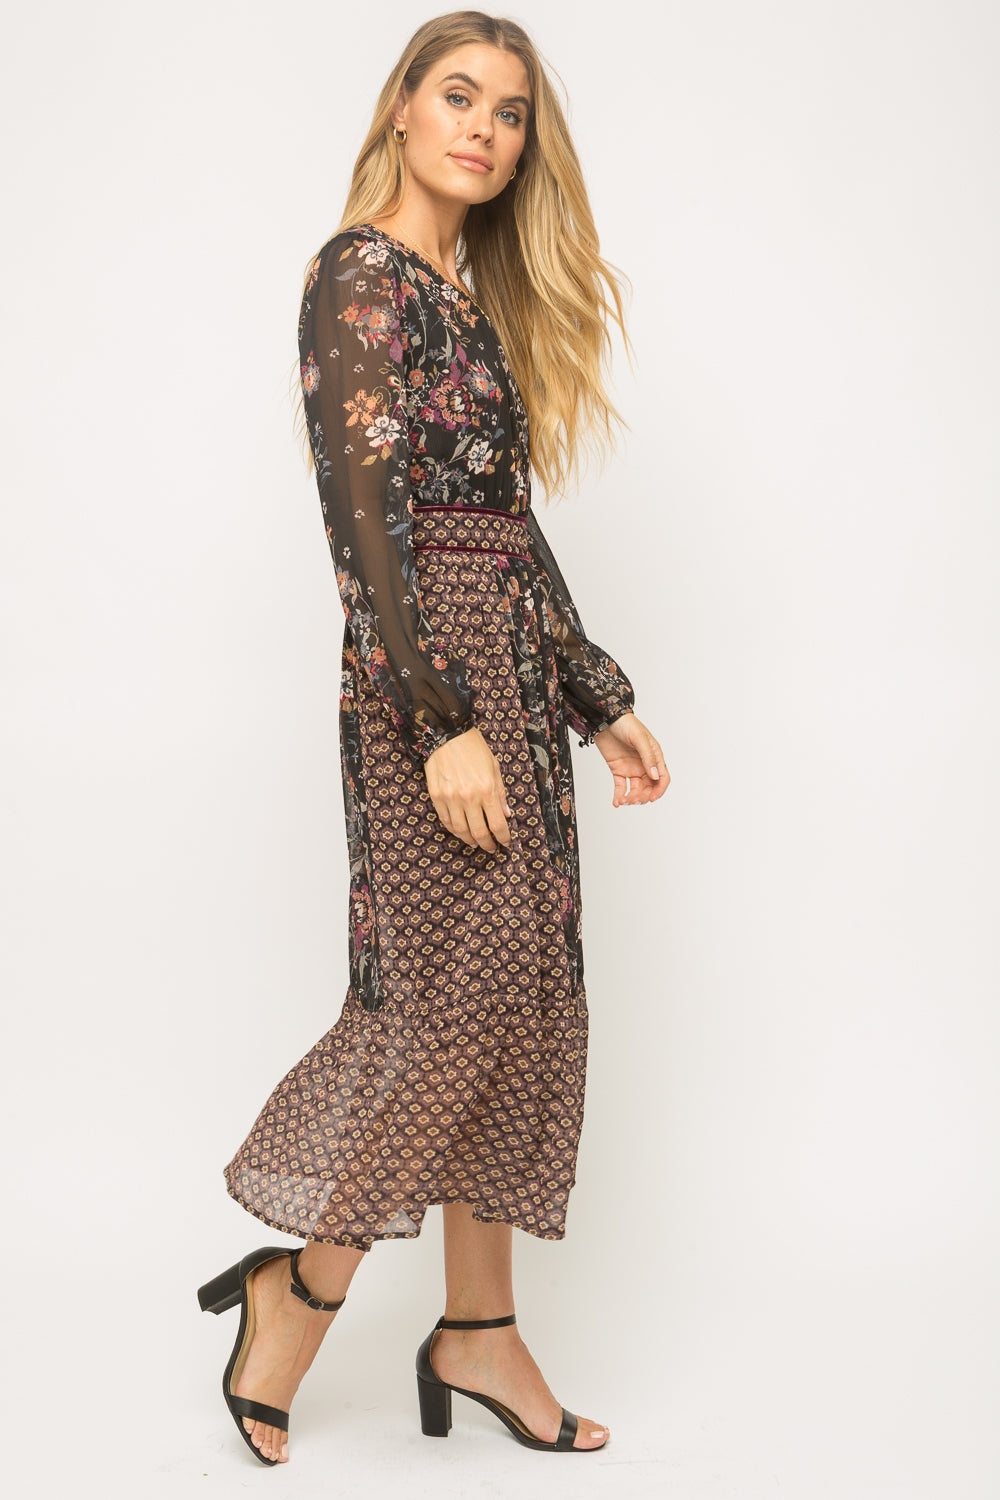 Mixed printed long sleeve dress  Effortless, pull on style Ruffled bottom hem Semi-Sheer long sleeves Pleating neckline and waist for added shape Fully lined -Self: 100% Polyester / Lining: 100% Polyester